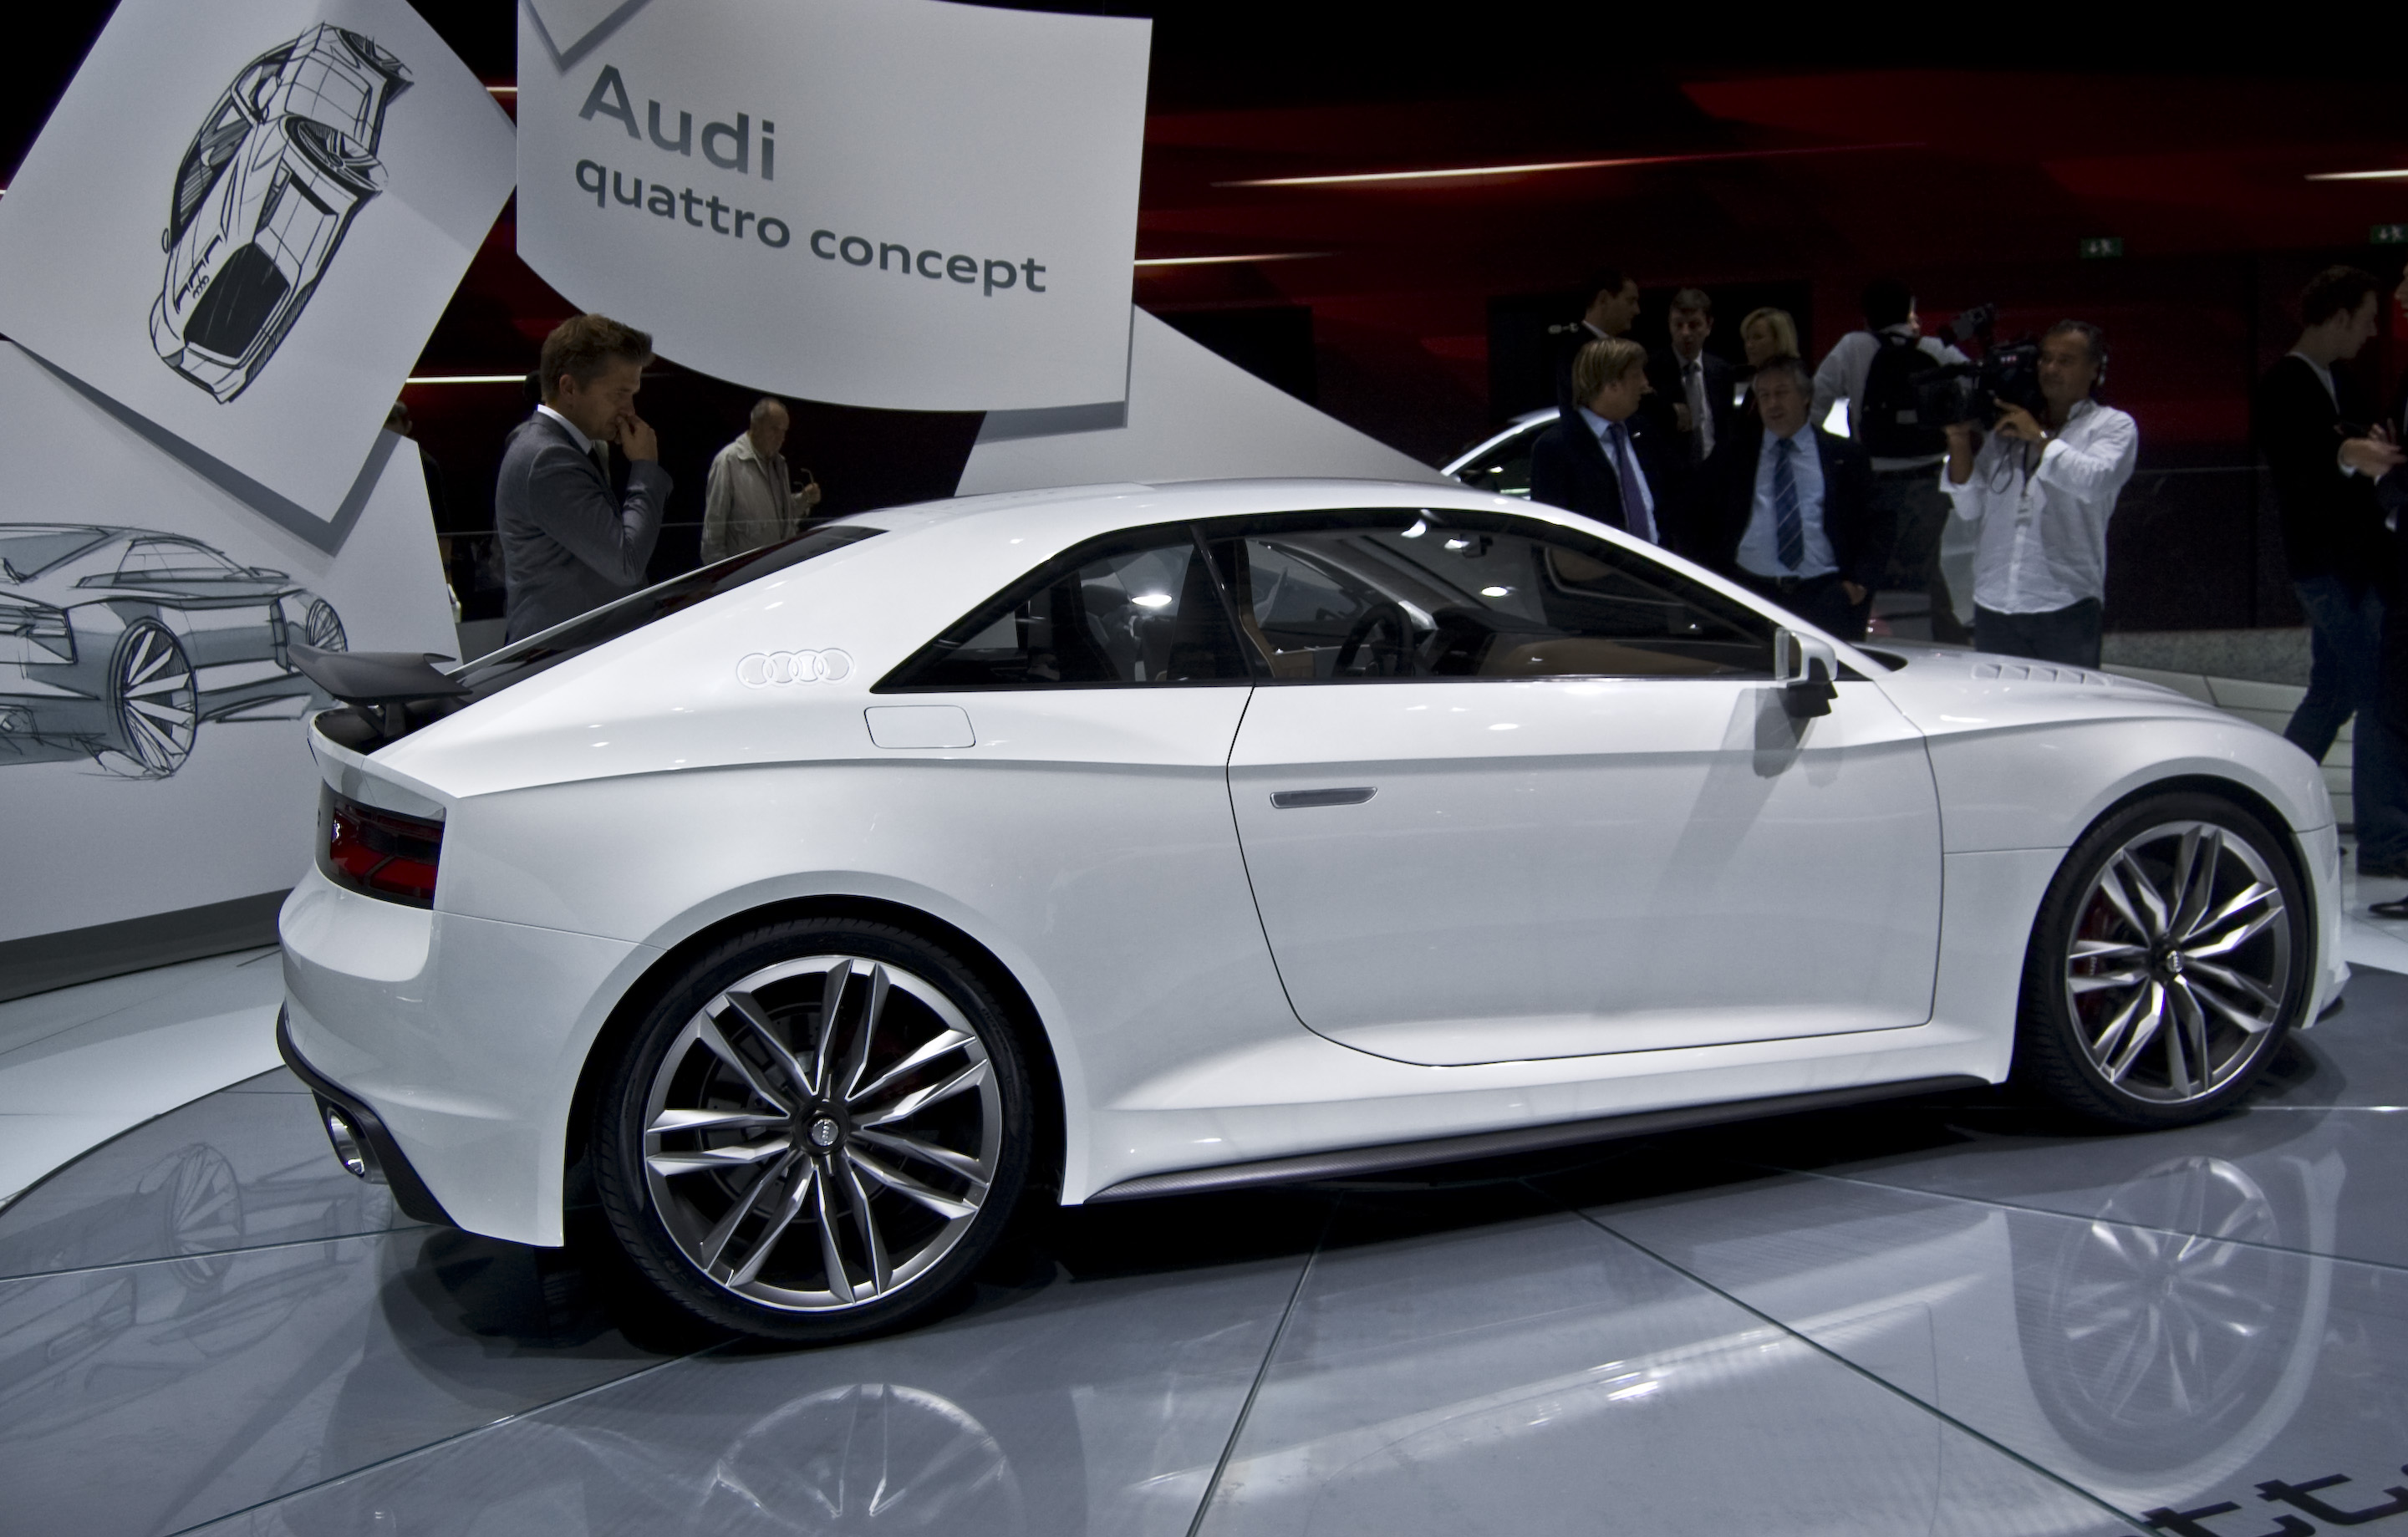 File Audi Quattro Concept Flickr David Villarreal